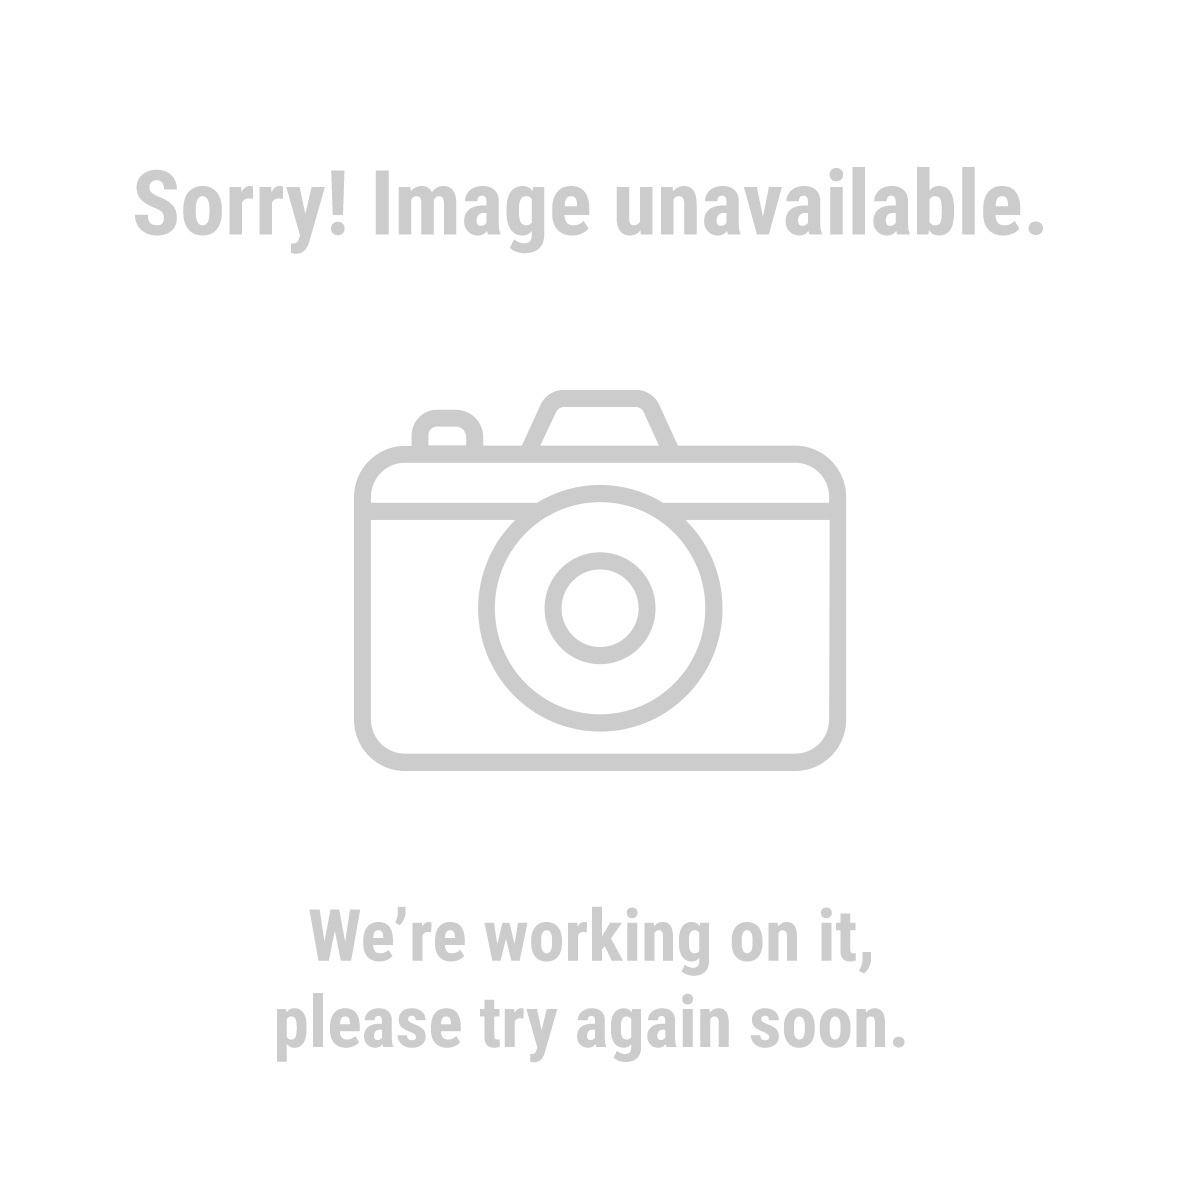 Greenwood® 63145 1-1/4 gal. Home and Garden Sprayer